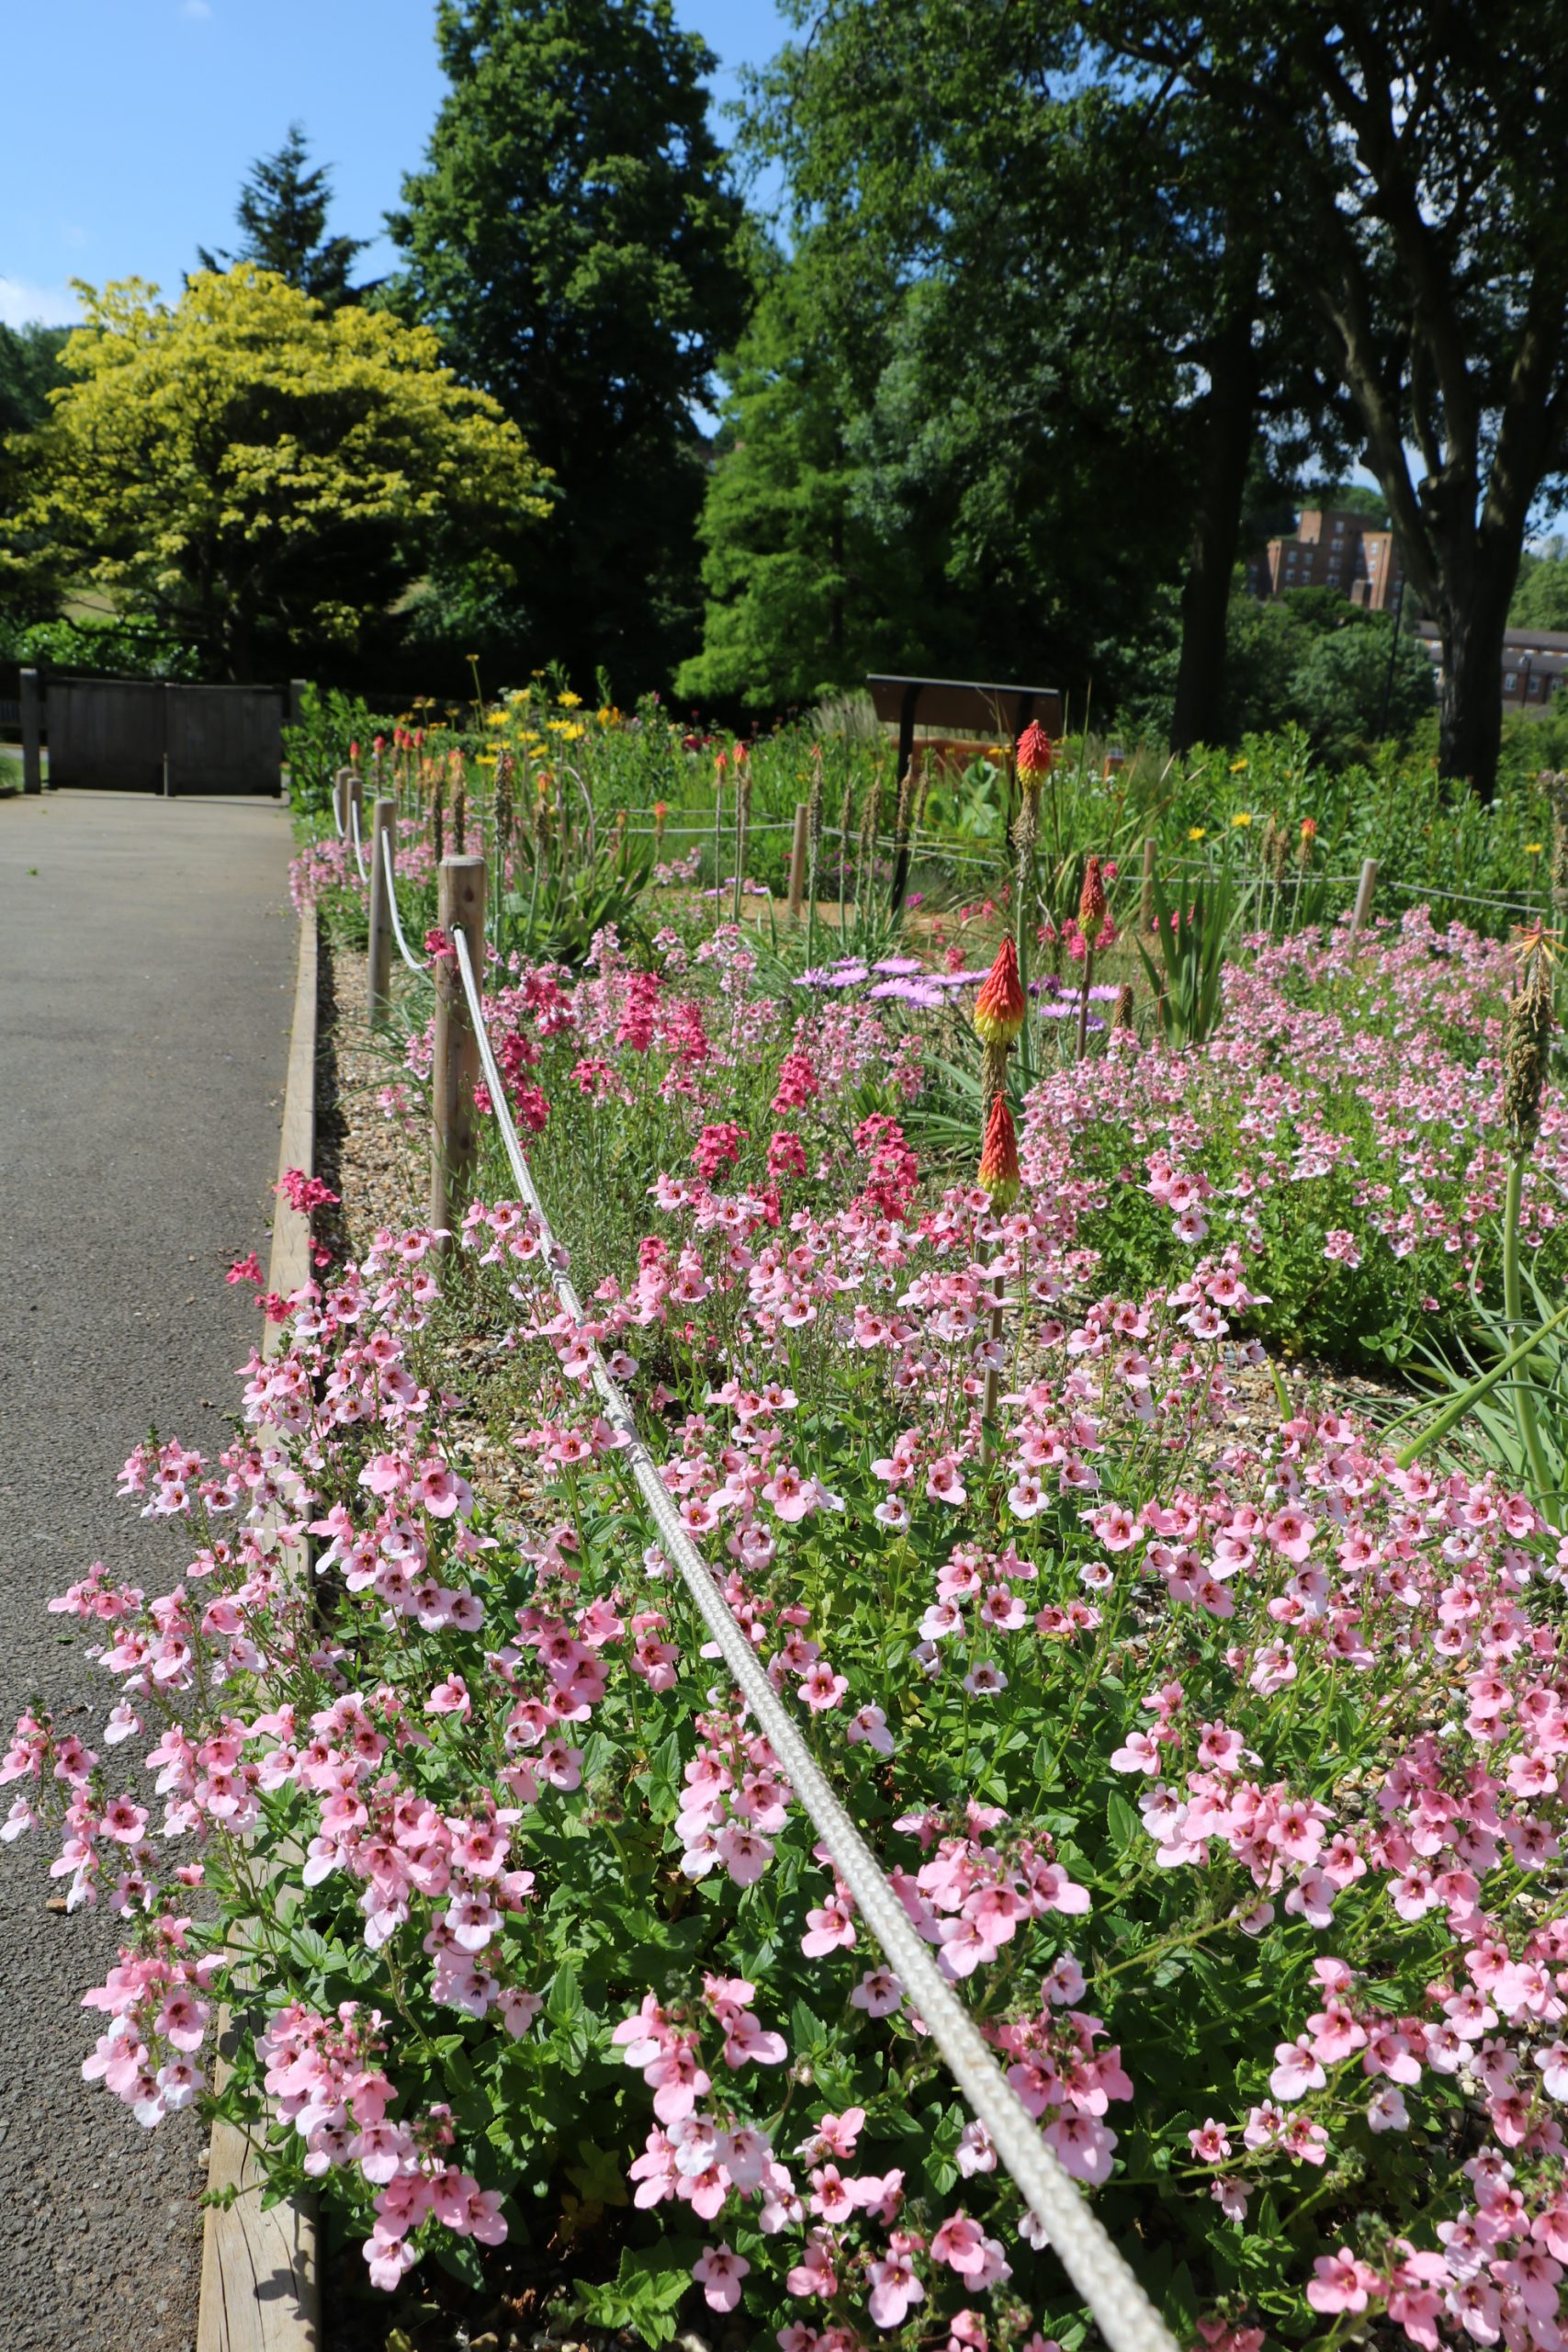 A path runs alongside a flowerbed to the left, while pink flowers spike up and spreadout from the bed onto the path. Trees are in the background